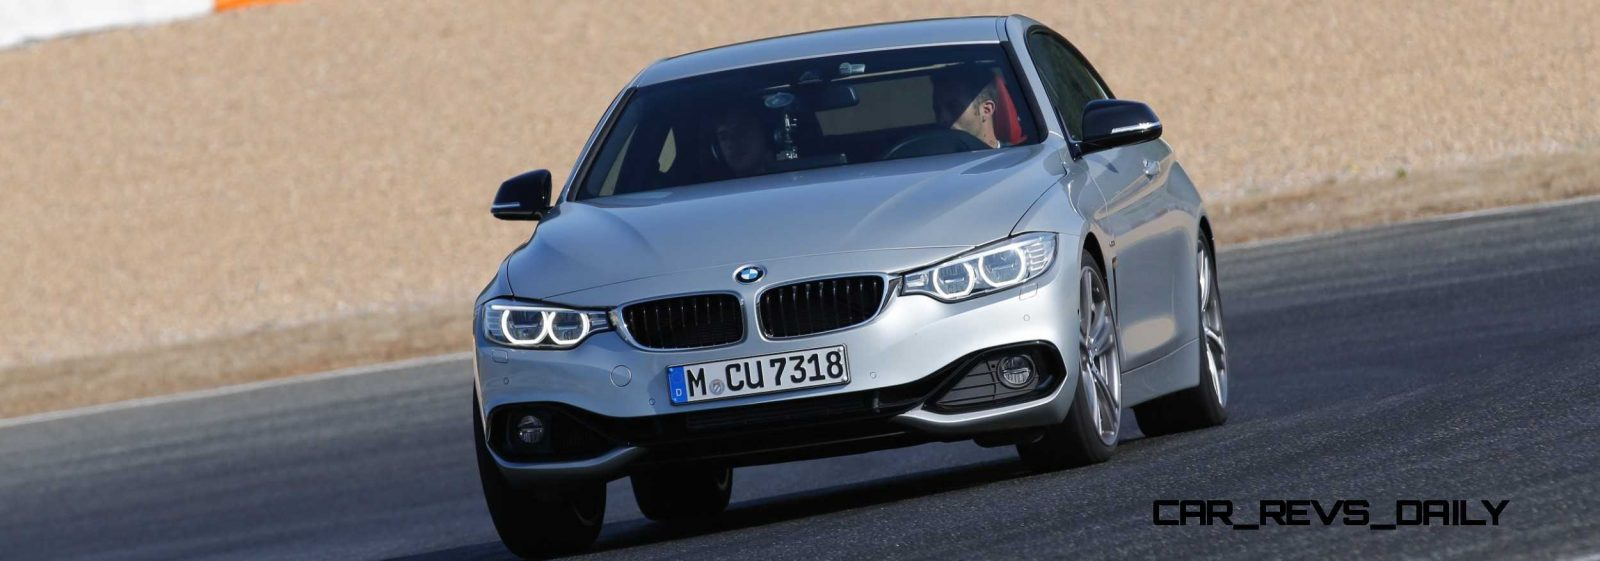 Latest BMW 435i Track Photos Show Beautiful Proportions 13